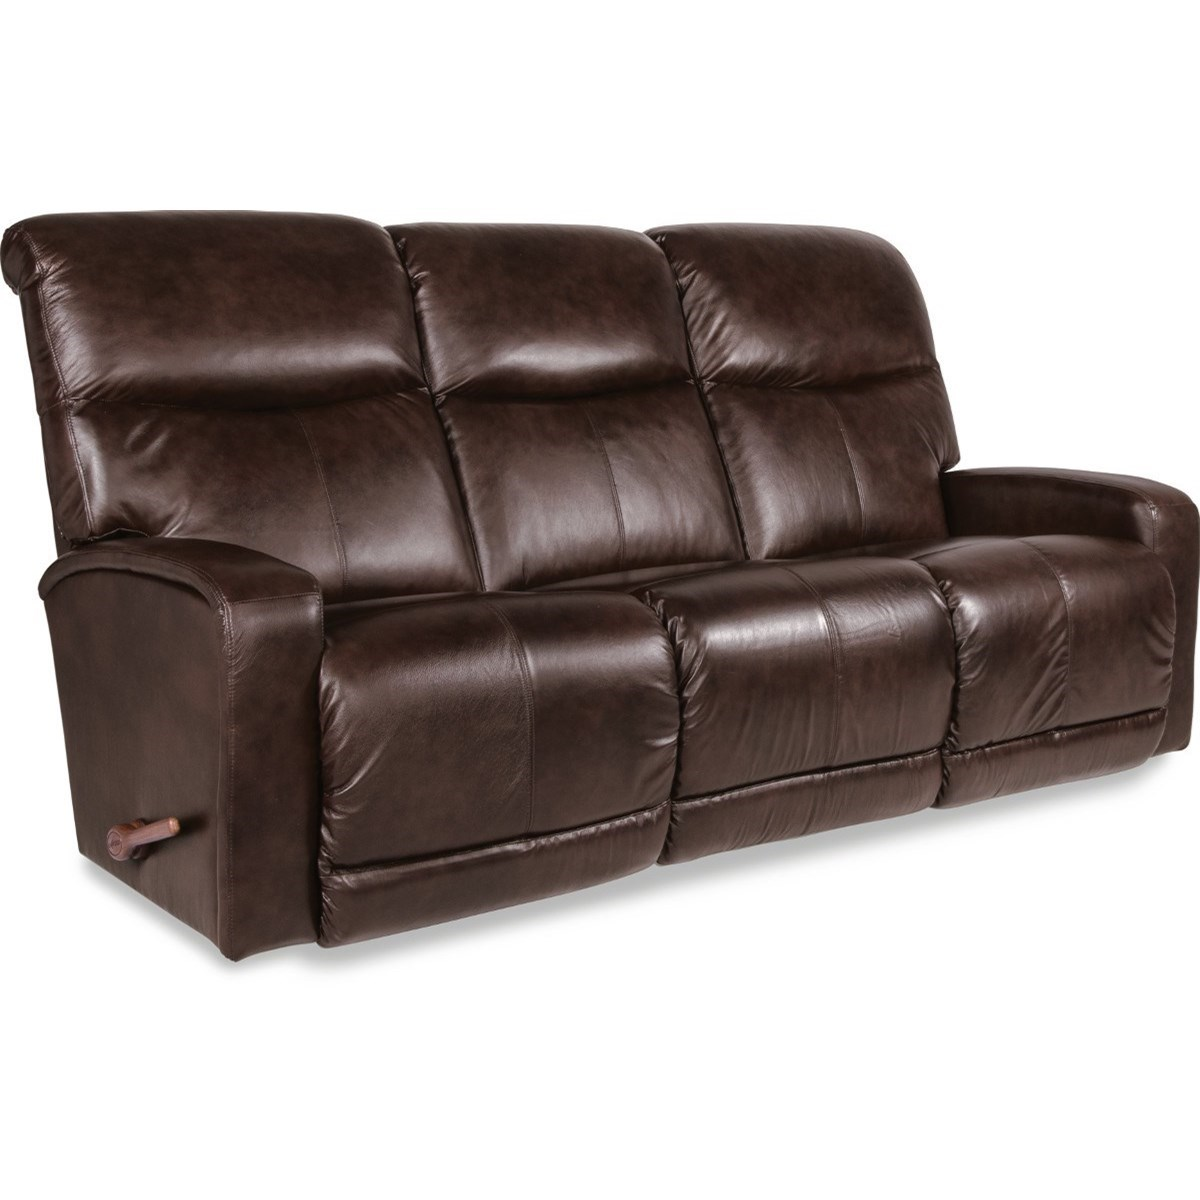 Swell Contemporary Wall Saver Reclining Sofa By La Z Boy Wolf Andrewgaddart Wooden Chair Designs For Living Room Andrewgaddartcom